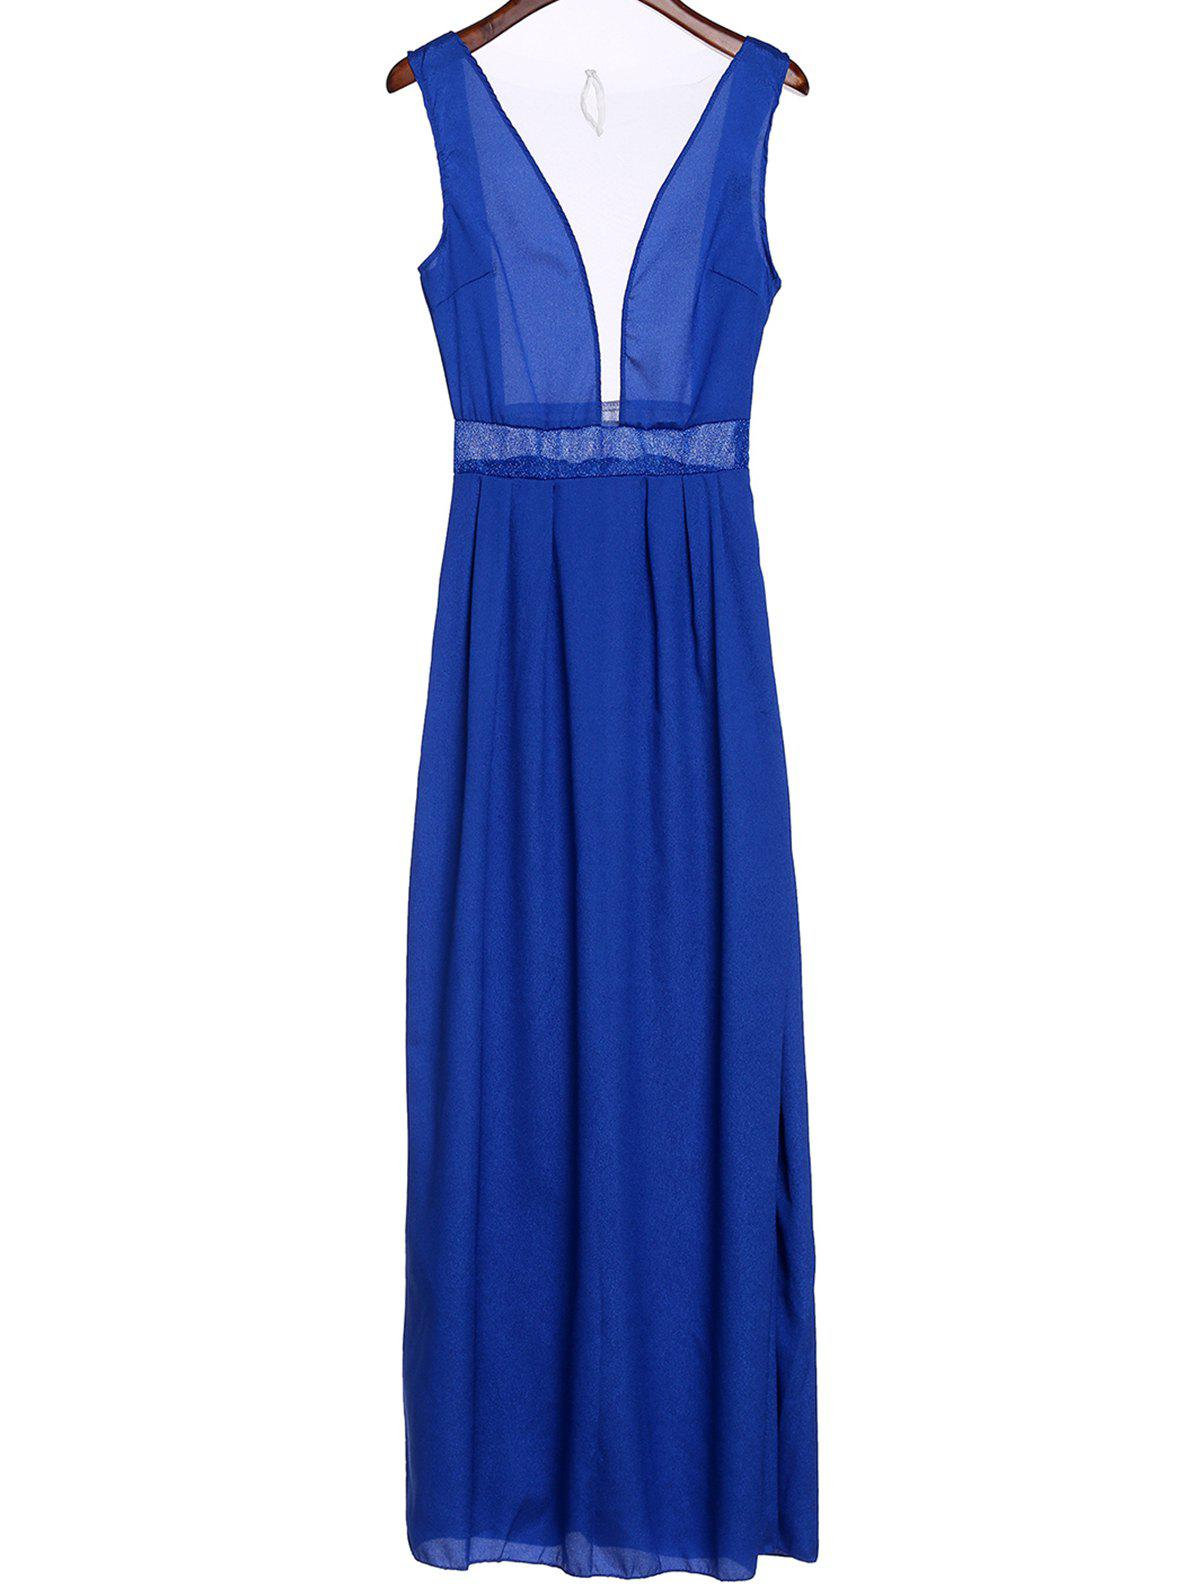 Sexy Sleeveless Plunging Neck Spliced See-Through Women's Prom Dress - BLUE S